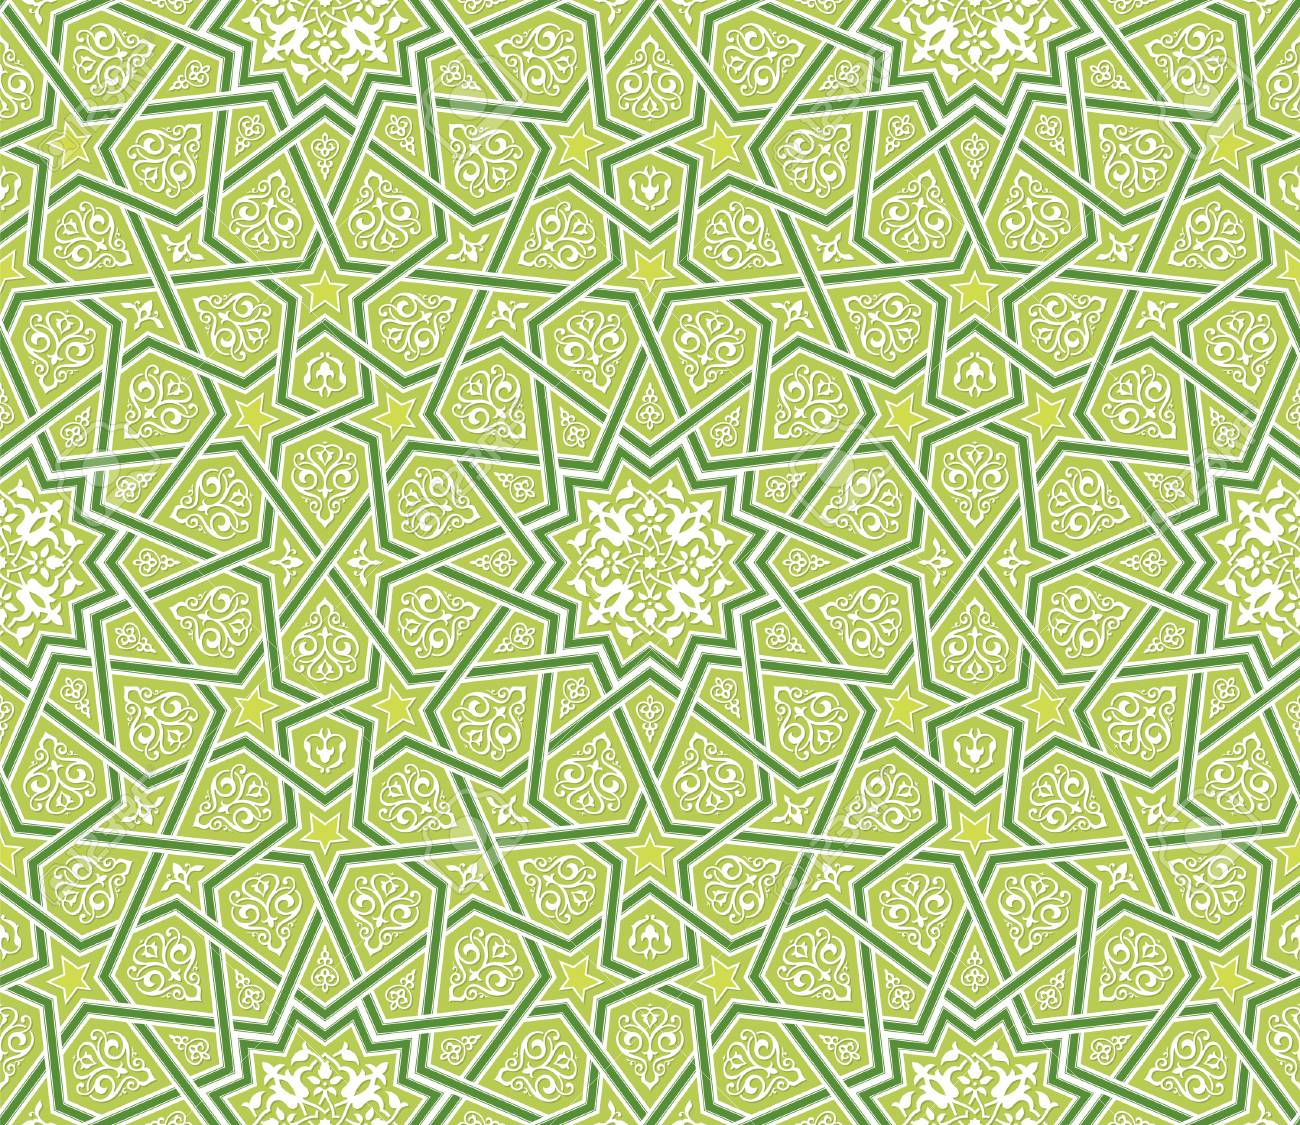 islamic star ornament green background vector illustration royalty free cliparts vectors and stock illustration image 94263541 islamic star ornament green background vector illustration